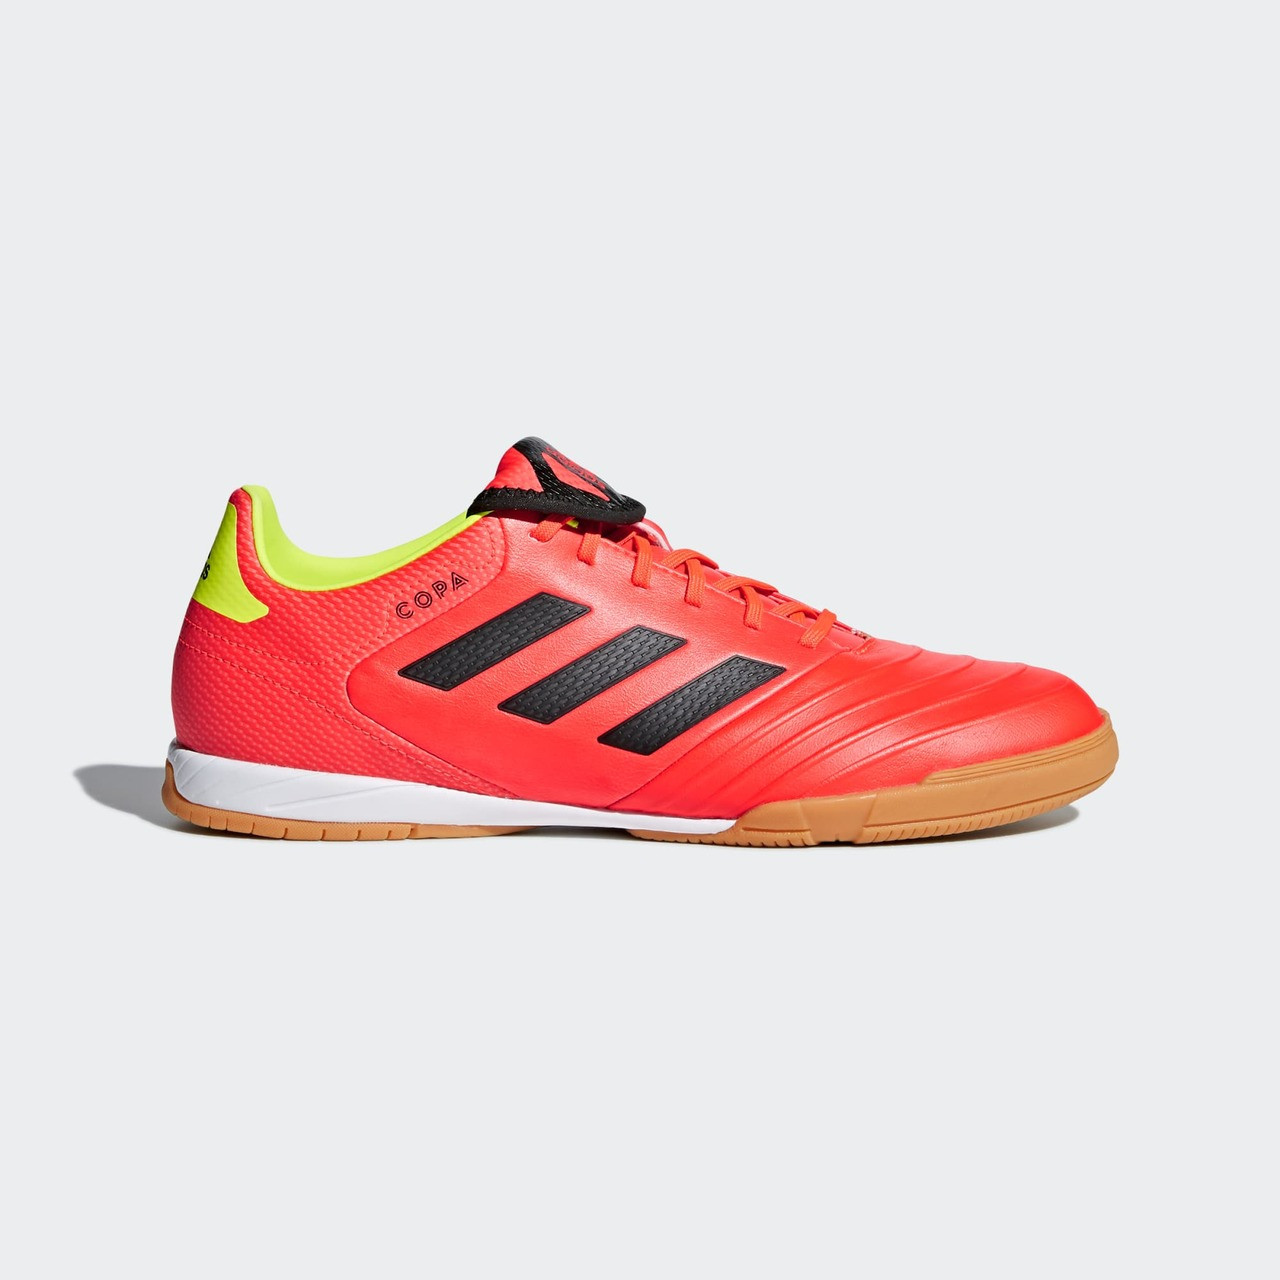 ADIDAS COPA TANGO 18.3 IN Solar red/Solar yellow